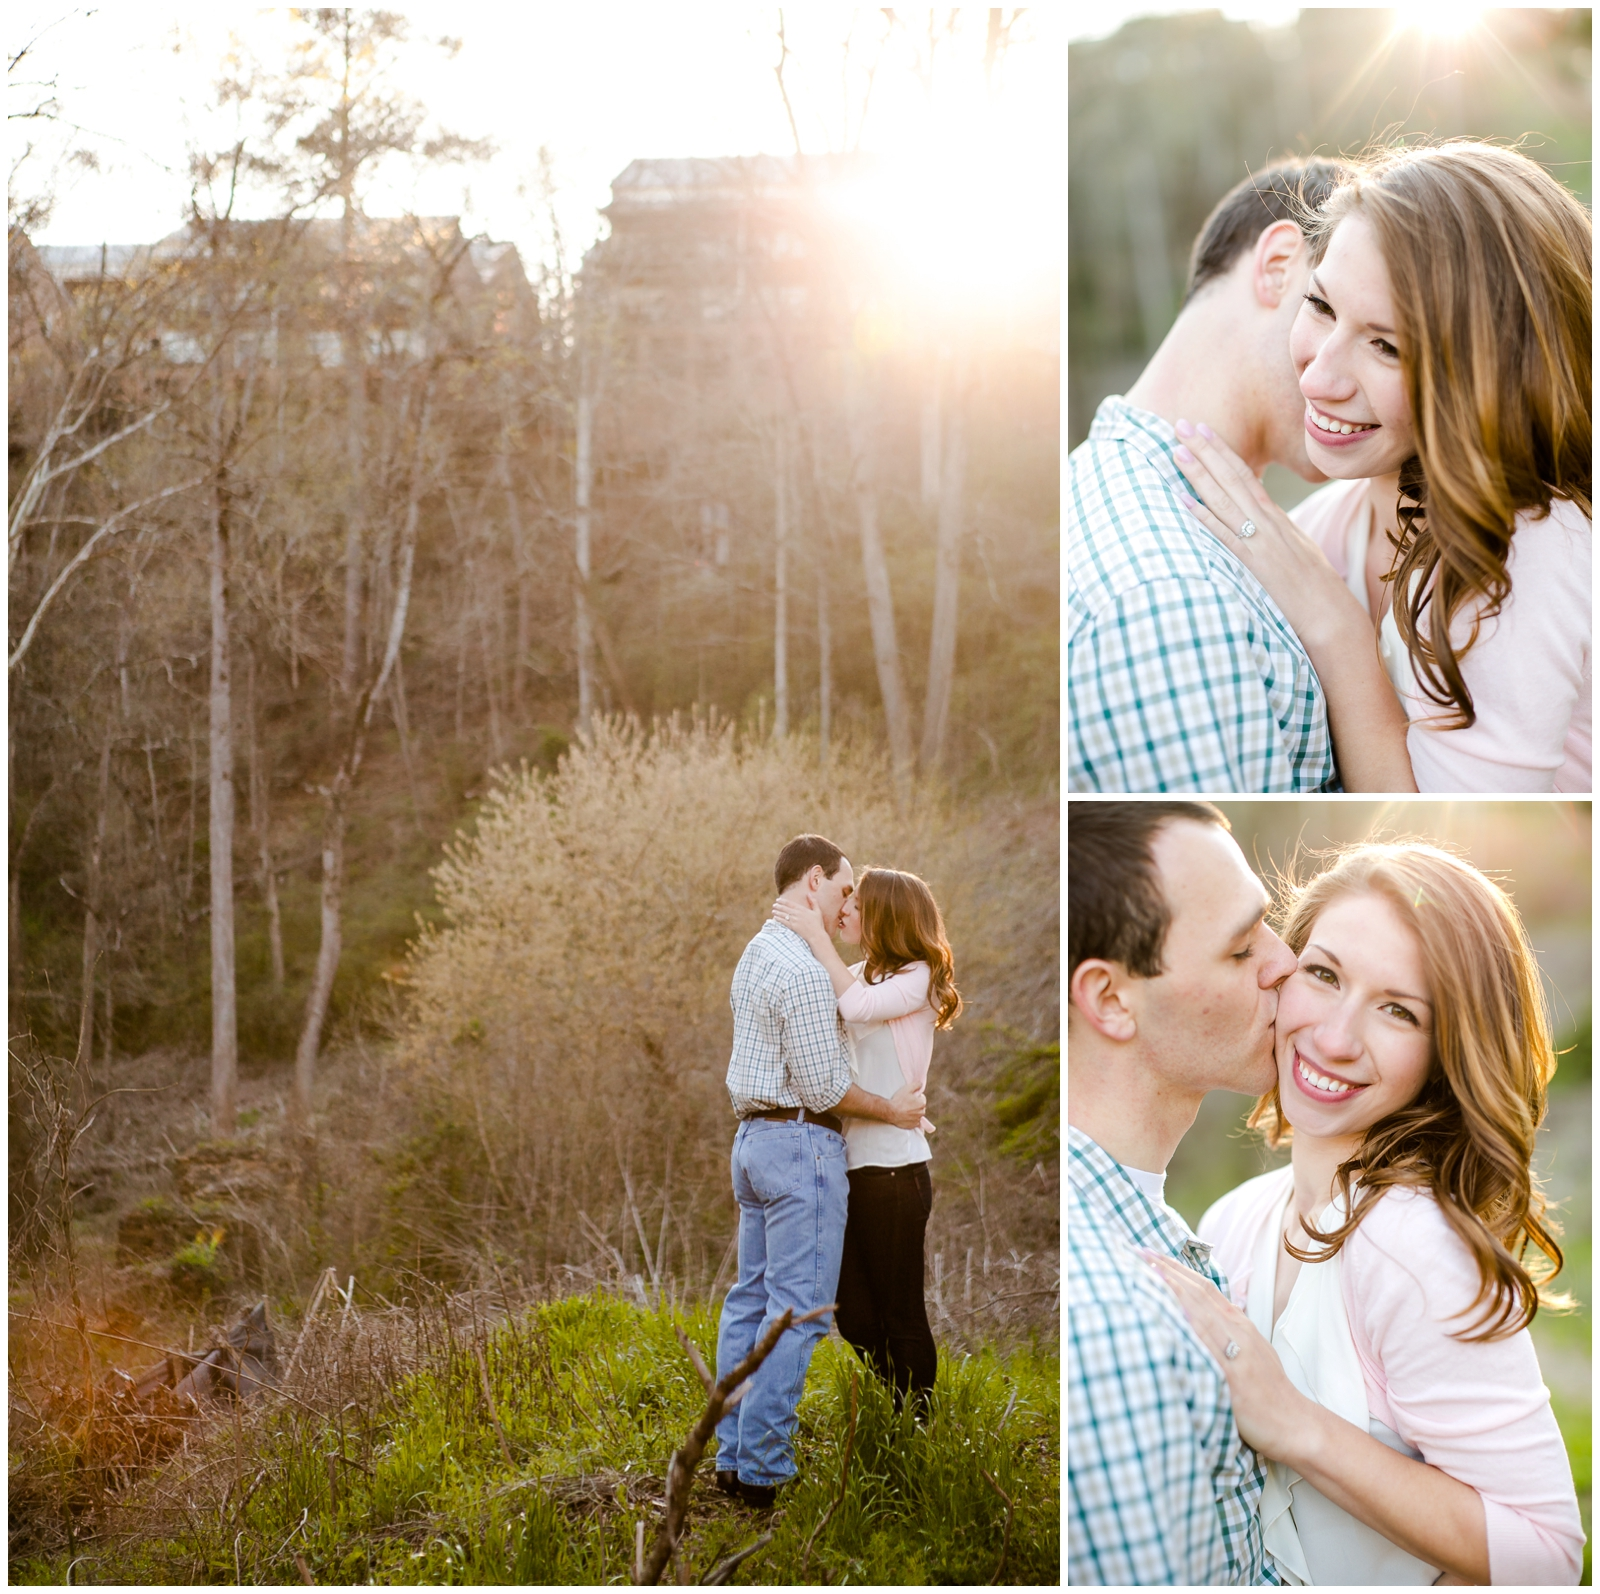 ArdentStoryHannahDavidEngaged_AtlantaEngagement_0017